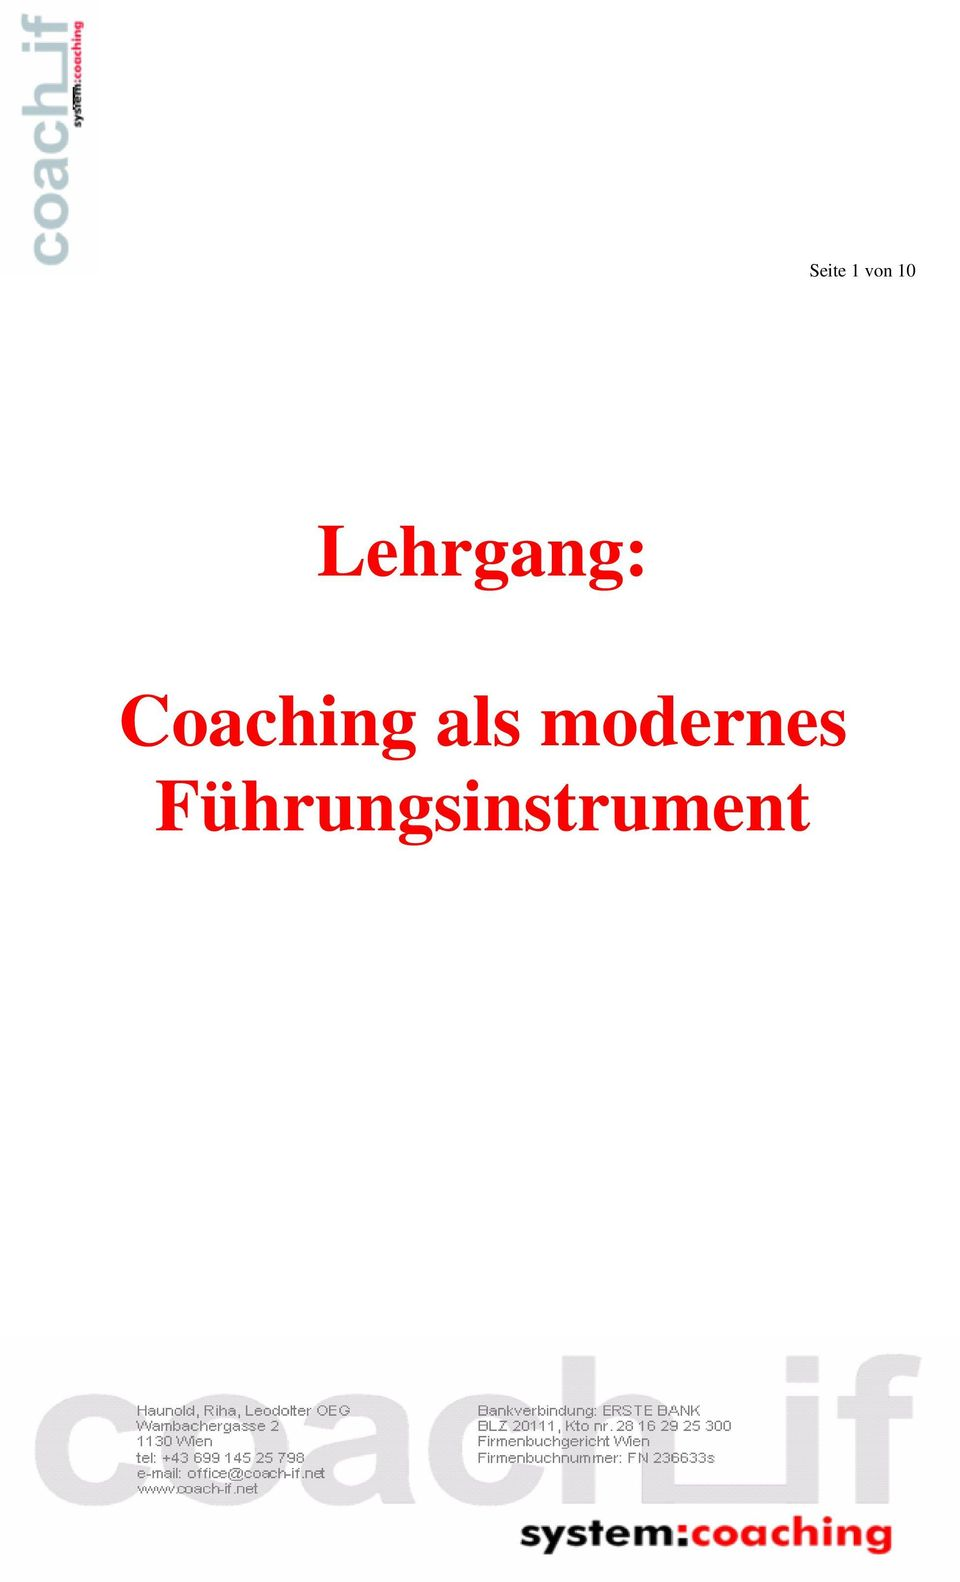 Coaching als